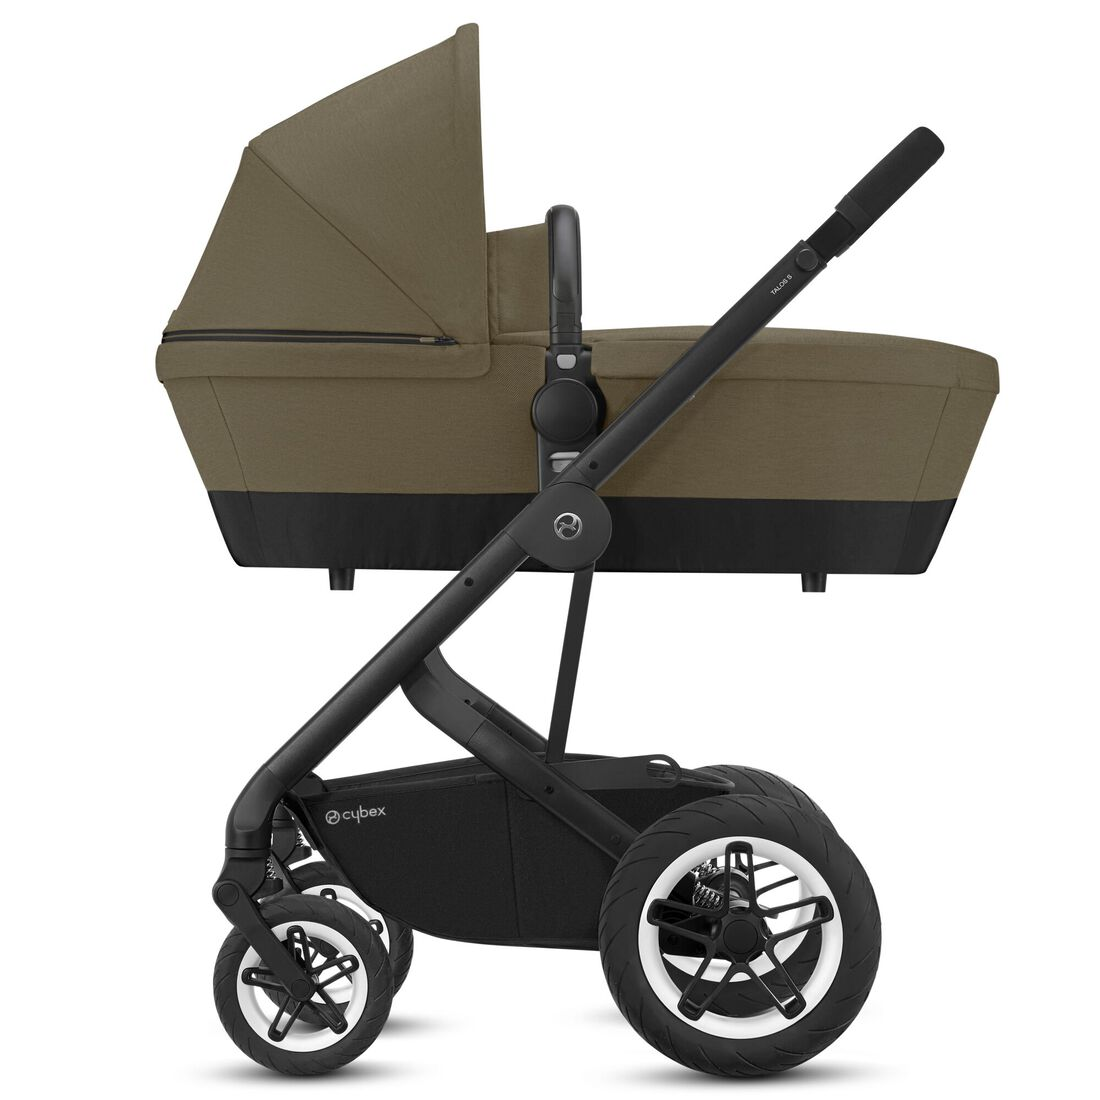 CYBEX Talos S 2-in-1 - Classic Beige in Classic Beige large image number 2